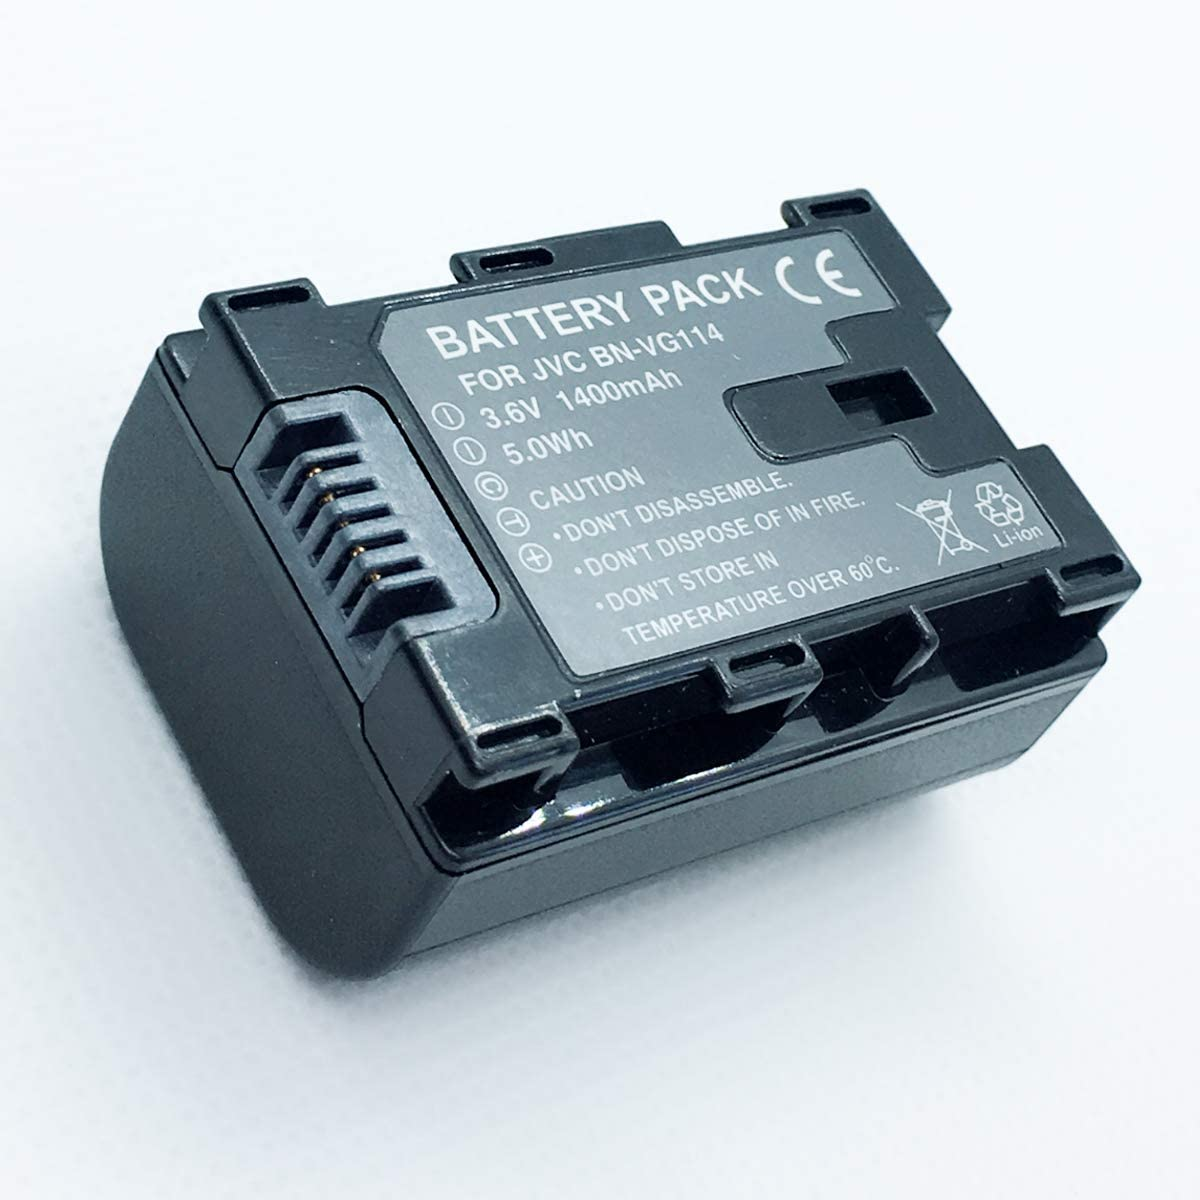 Rechargeable Battery Pack for JVC Everio GZ-MS230AU GZ-MS230BU GZ-MS230RU Flash Memory Camcorder